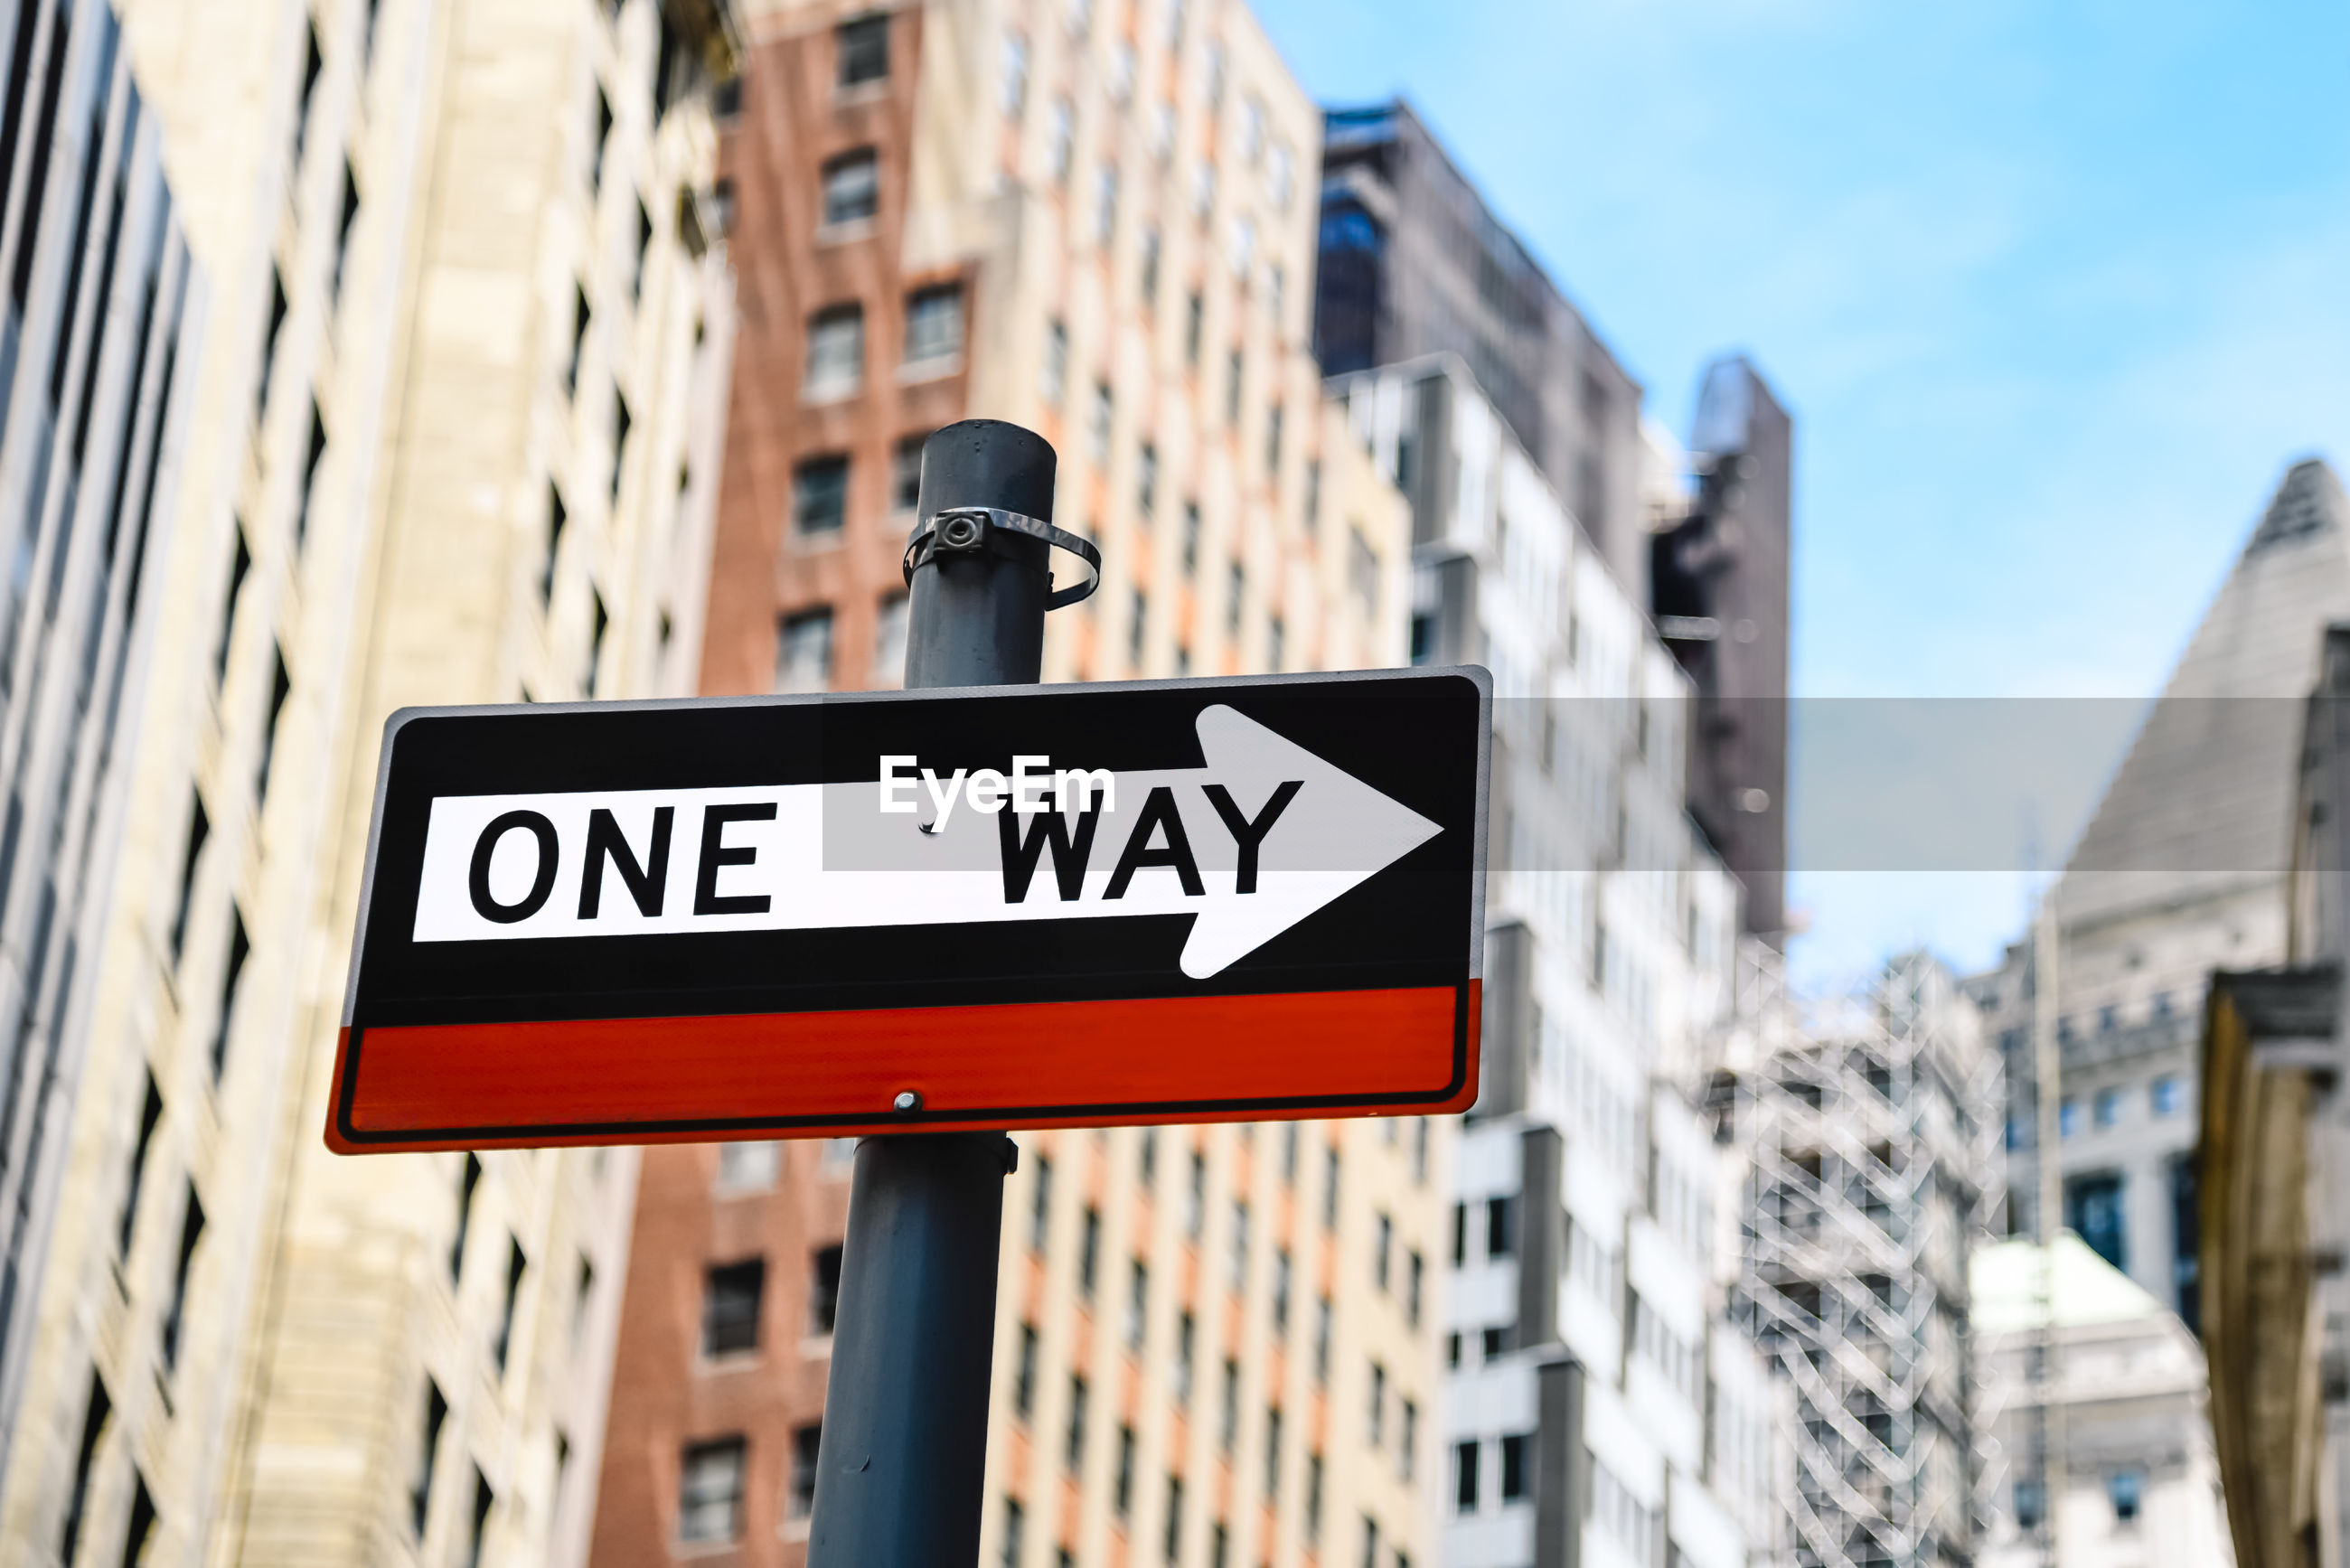 Low angle view of one way sign in city